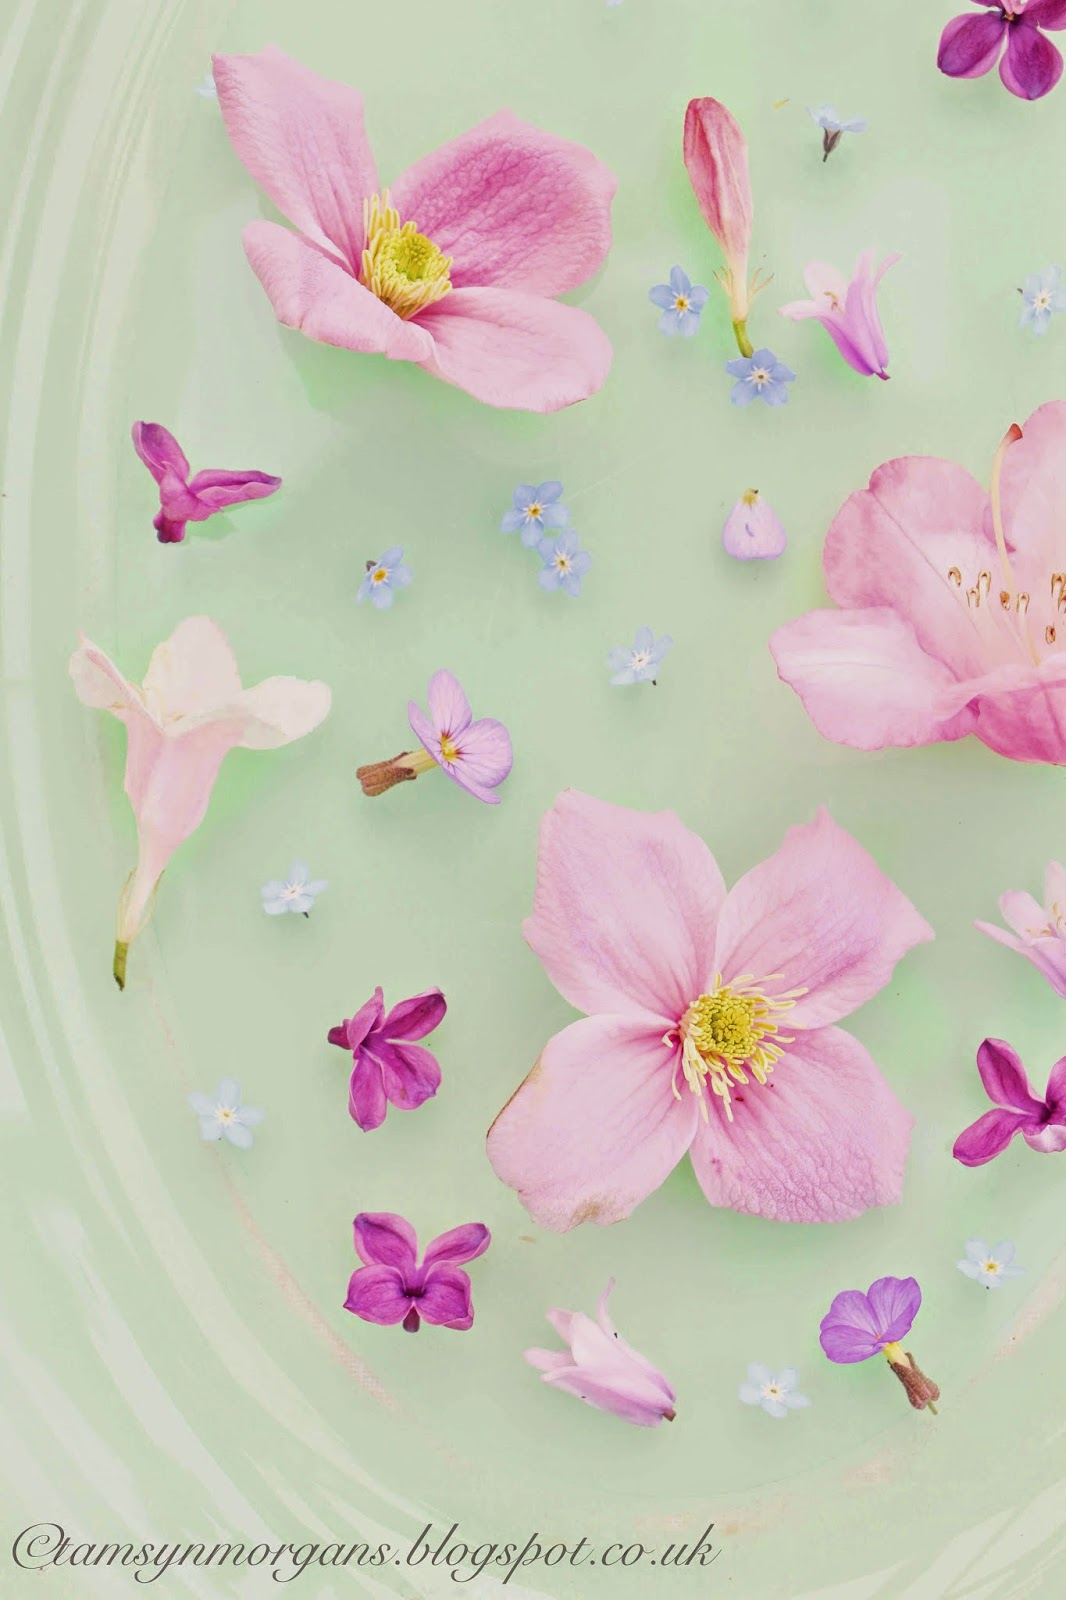 Vintage Plate and Flowers